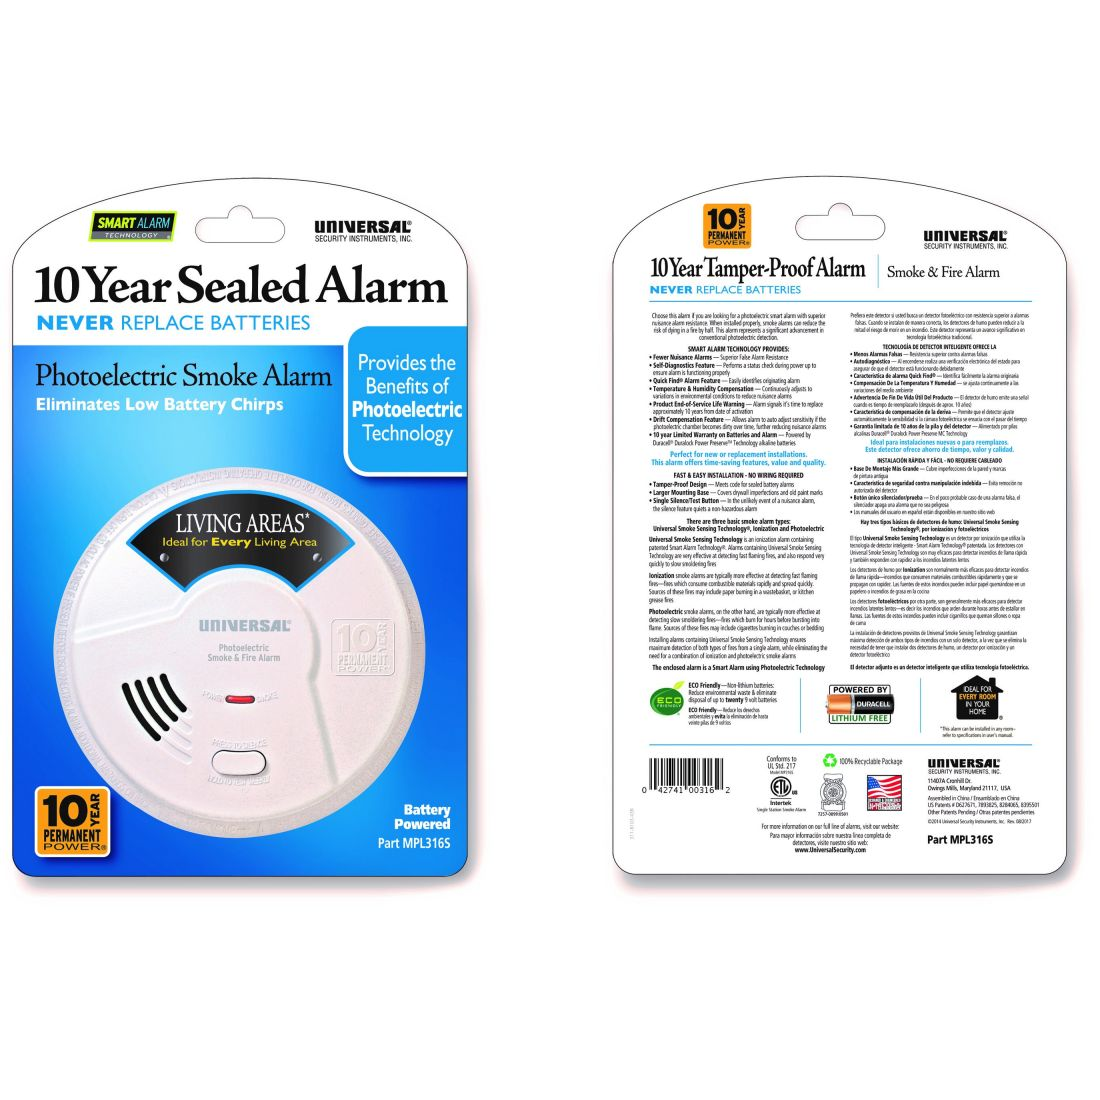 Universal Security Instruments MPL316S Photoelectric 10 Year Living Area Smoke & Fire Alarm